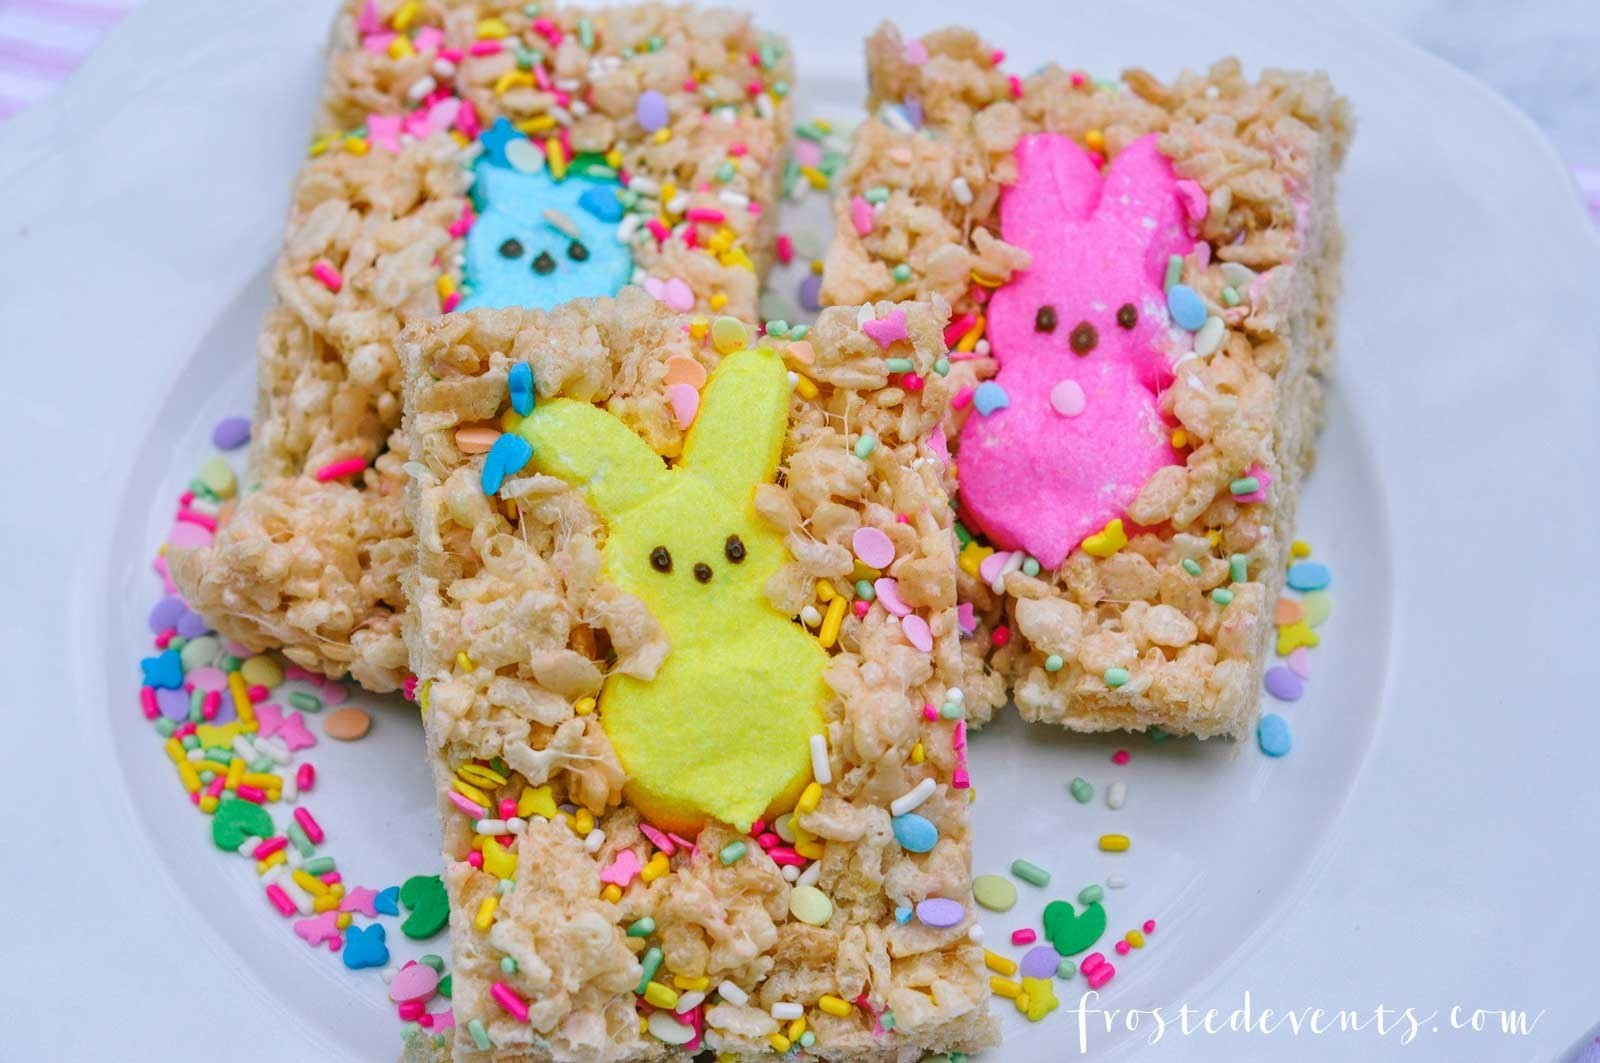 Easter Desserts With Peeps  Easter Treats How to Make Rice Krispies Peeps Treat